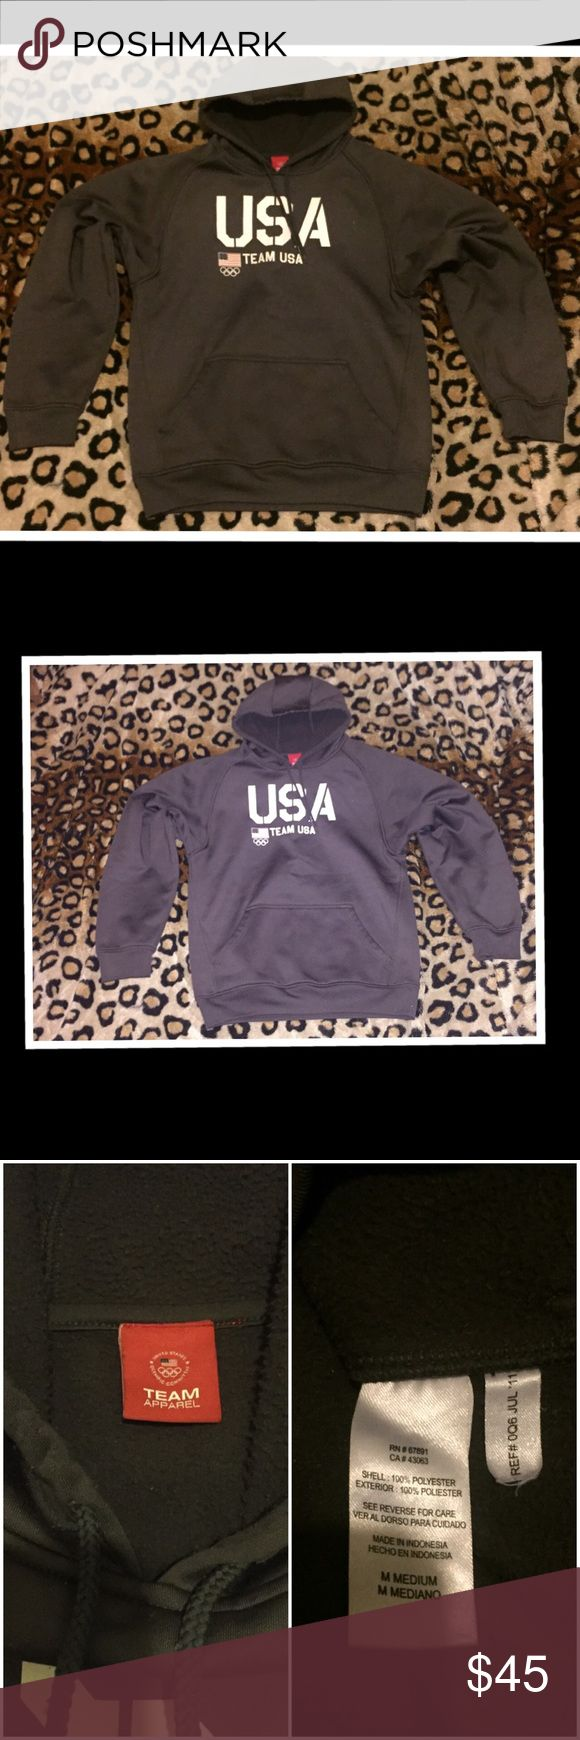 Authentic U.S. Olympic committee team apparel Authentic 2011 U.S. Olympic pull over hoodie. Show your Olympic spirit with this pullover hoodie. Great condition, no flaws. color is charcoal grey. Made with 100% polyester team apparel Sweaters